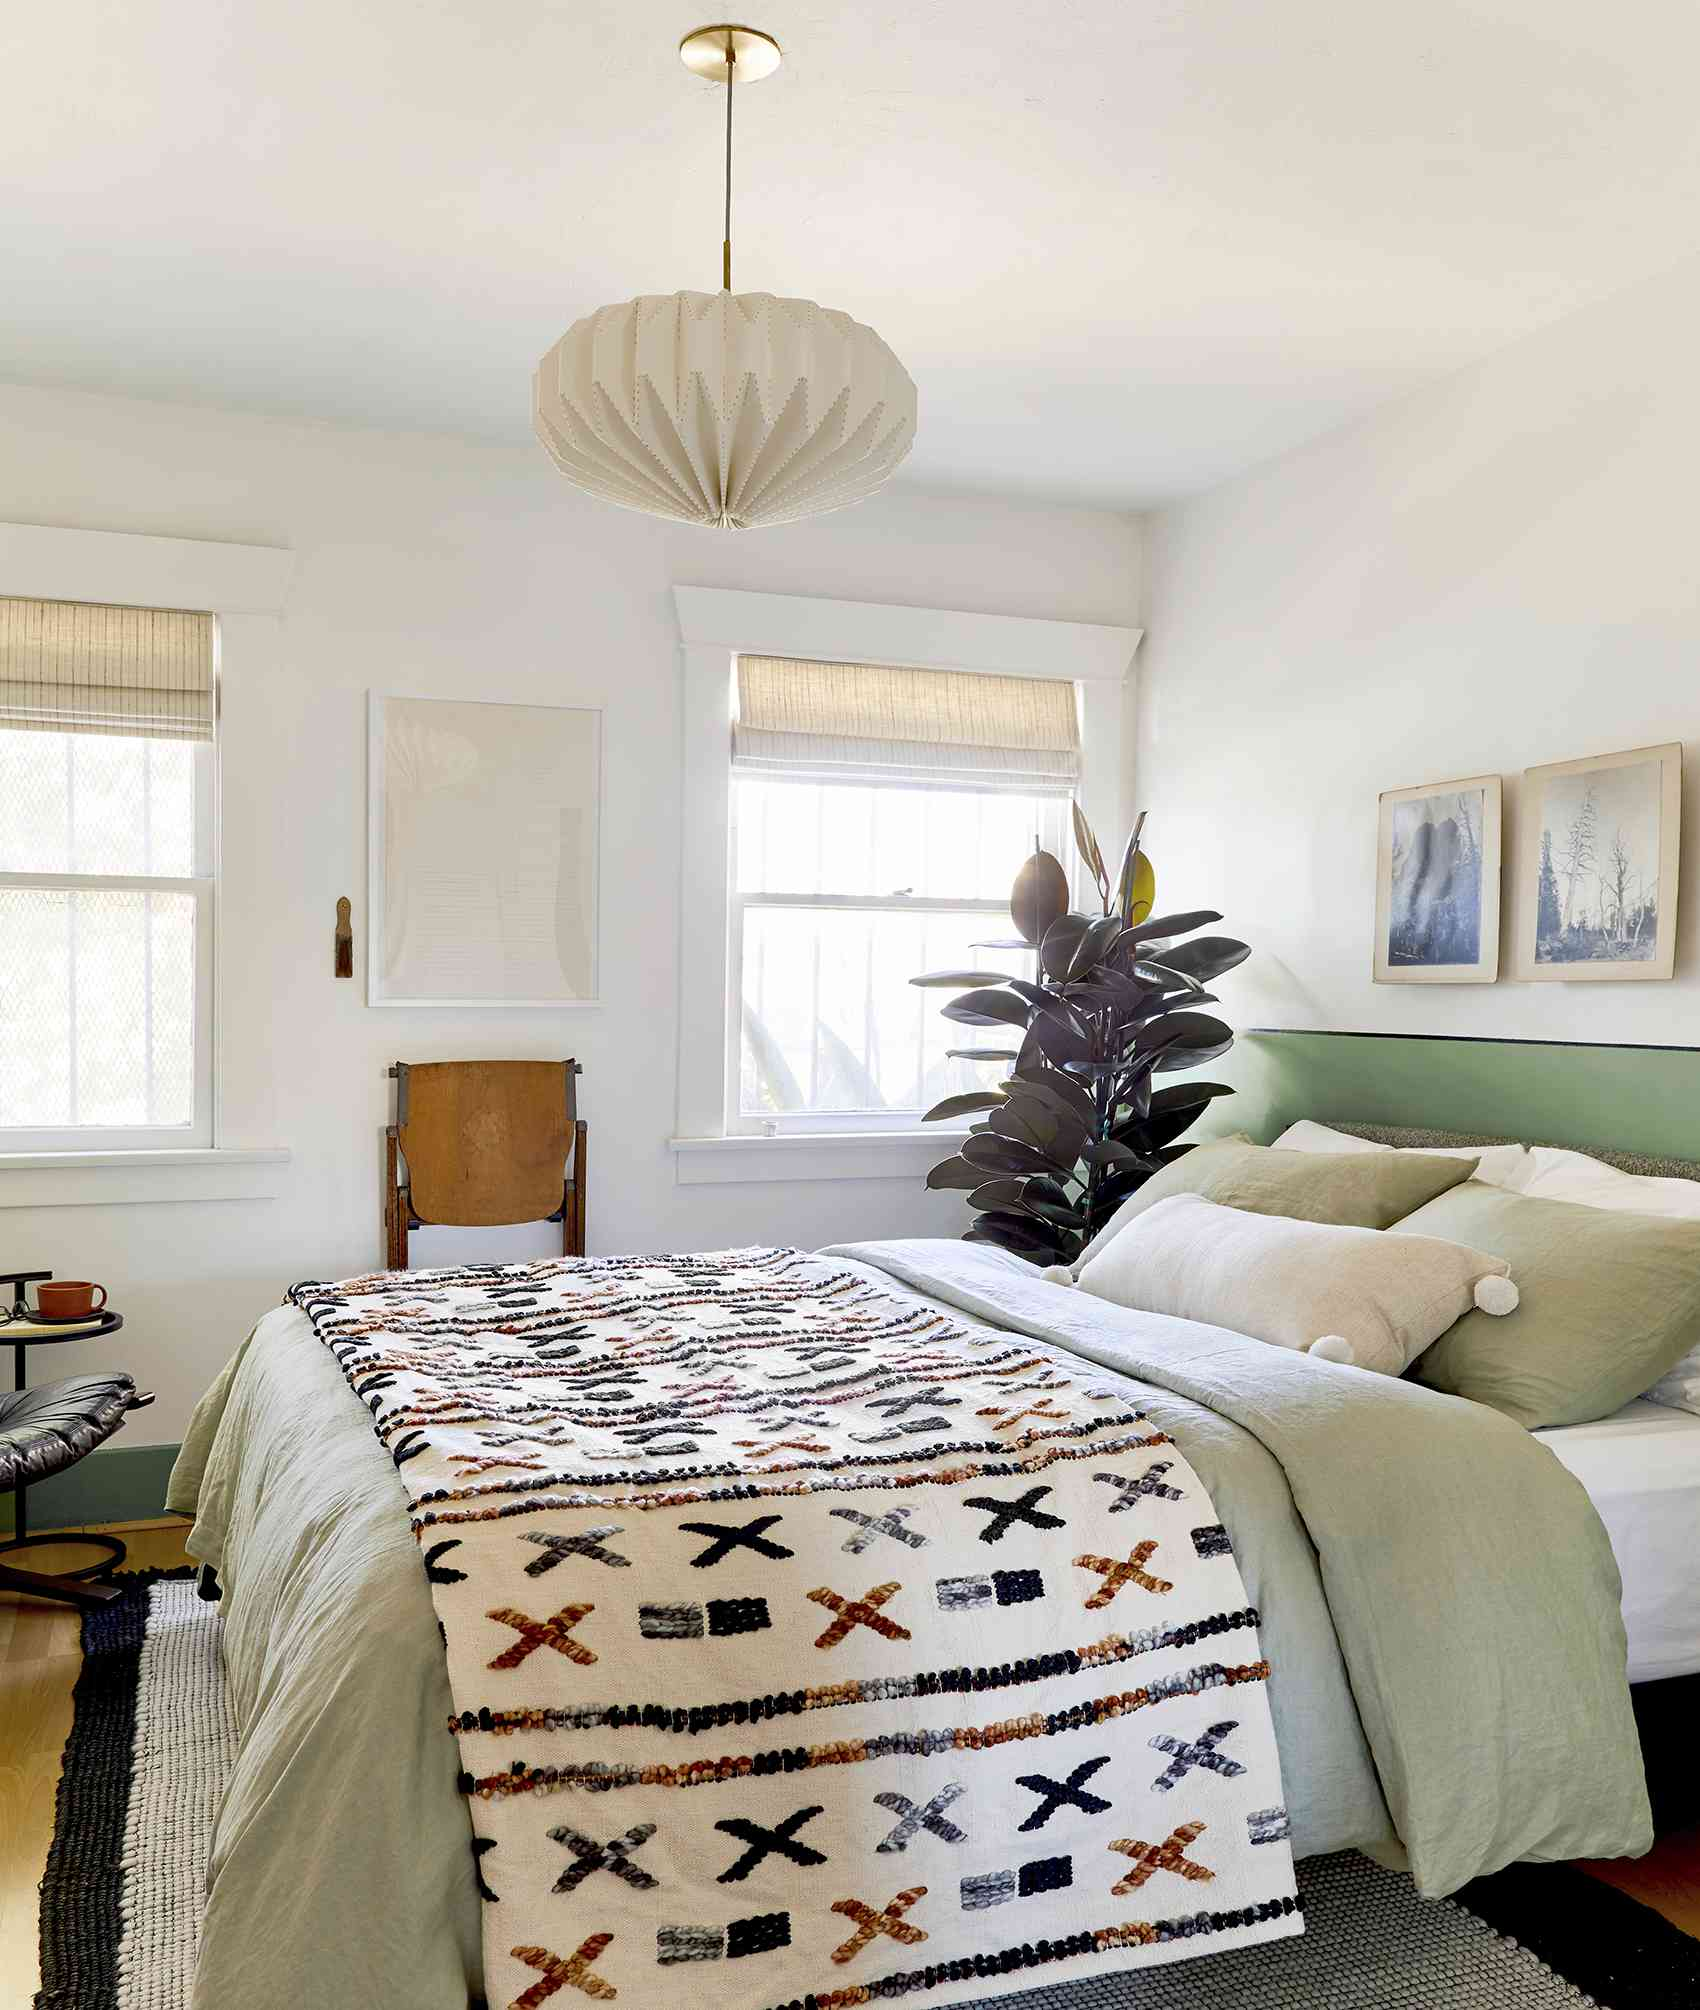 how to decorate with sage green - light green comforter in bedroom